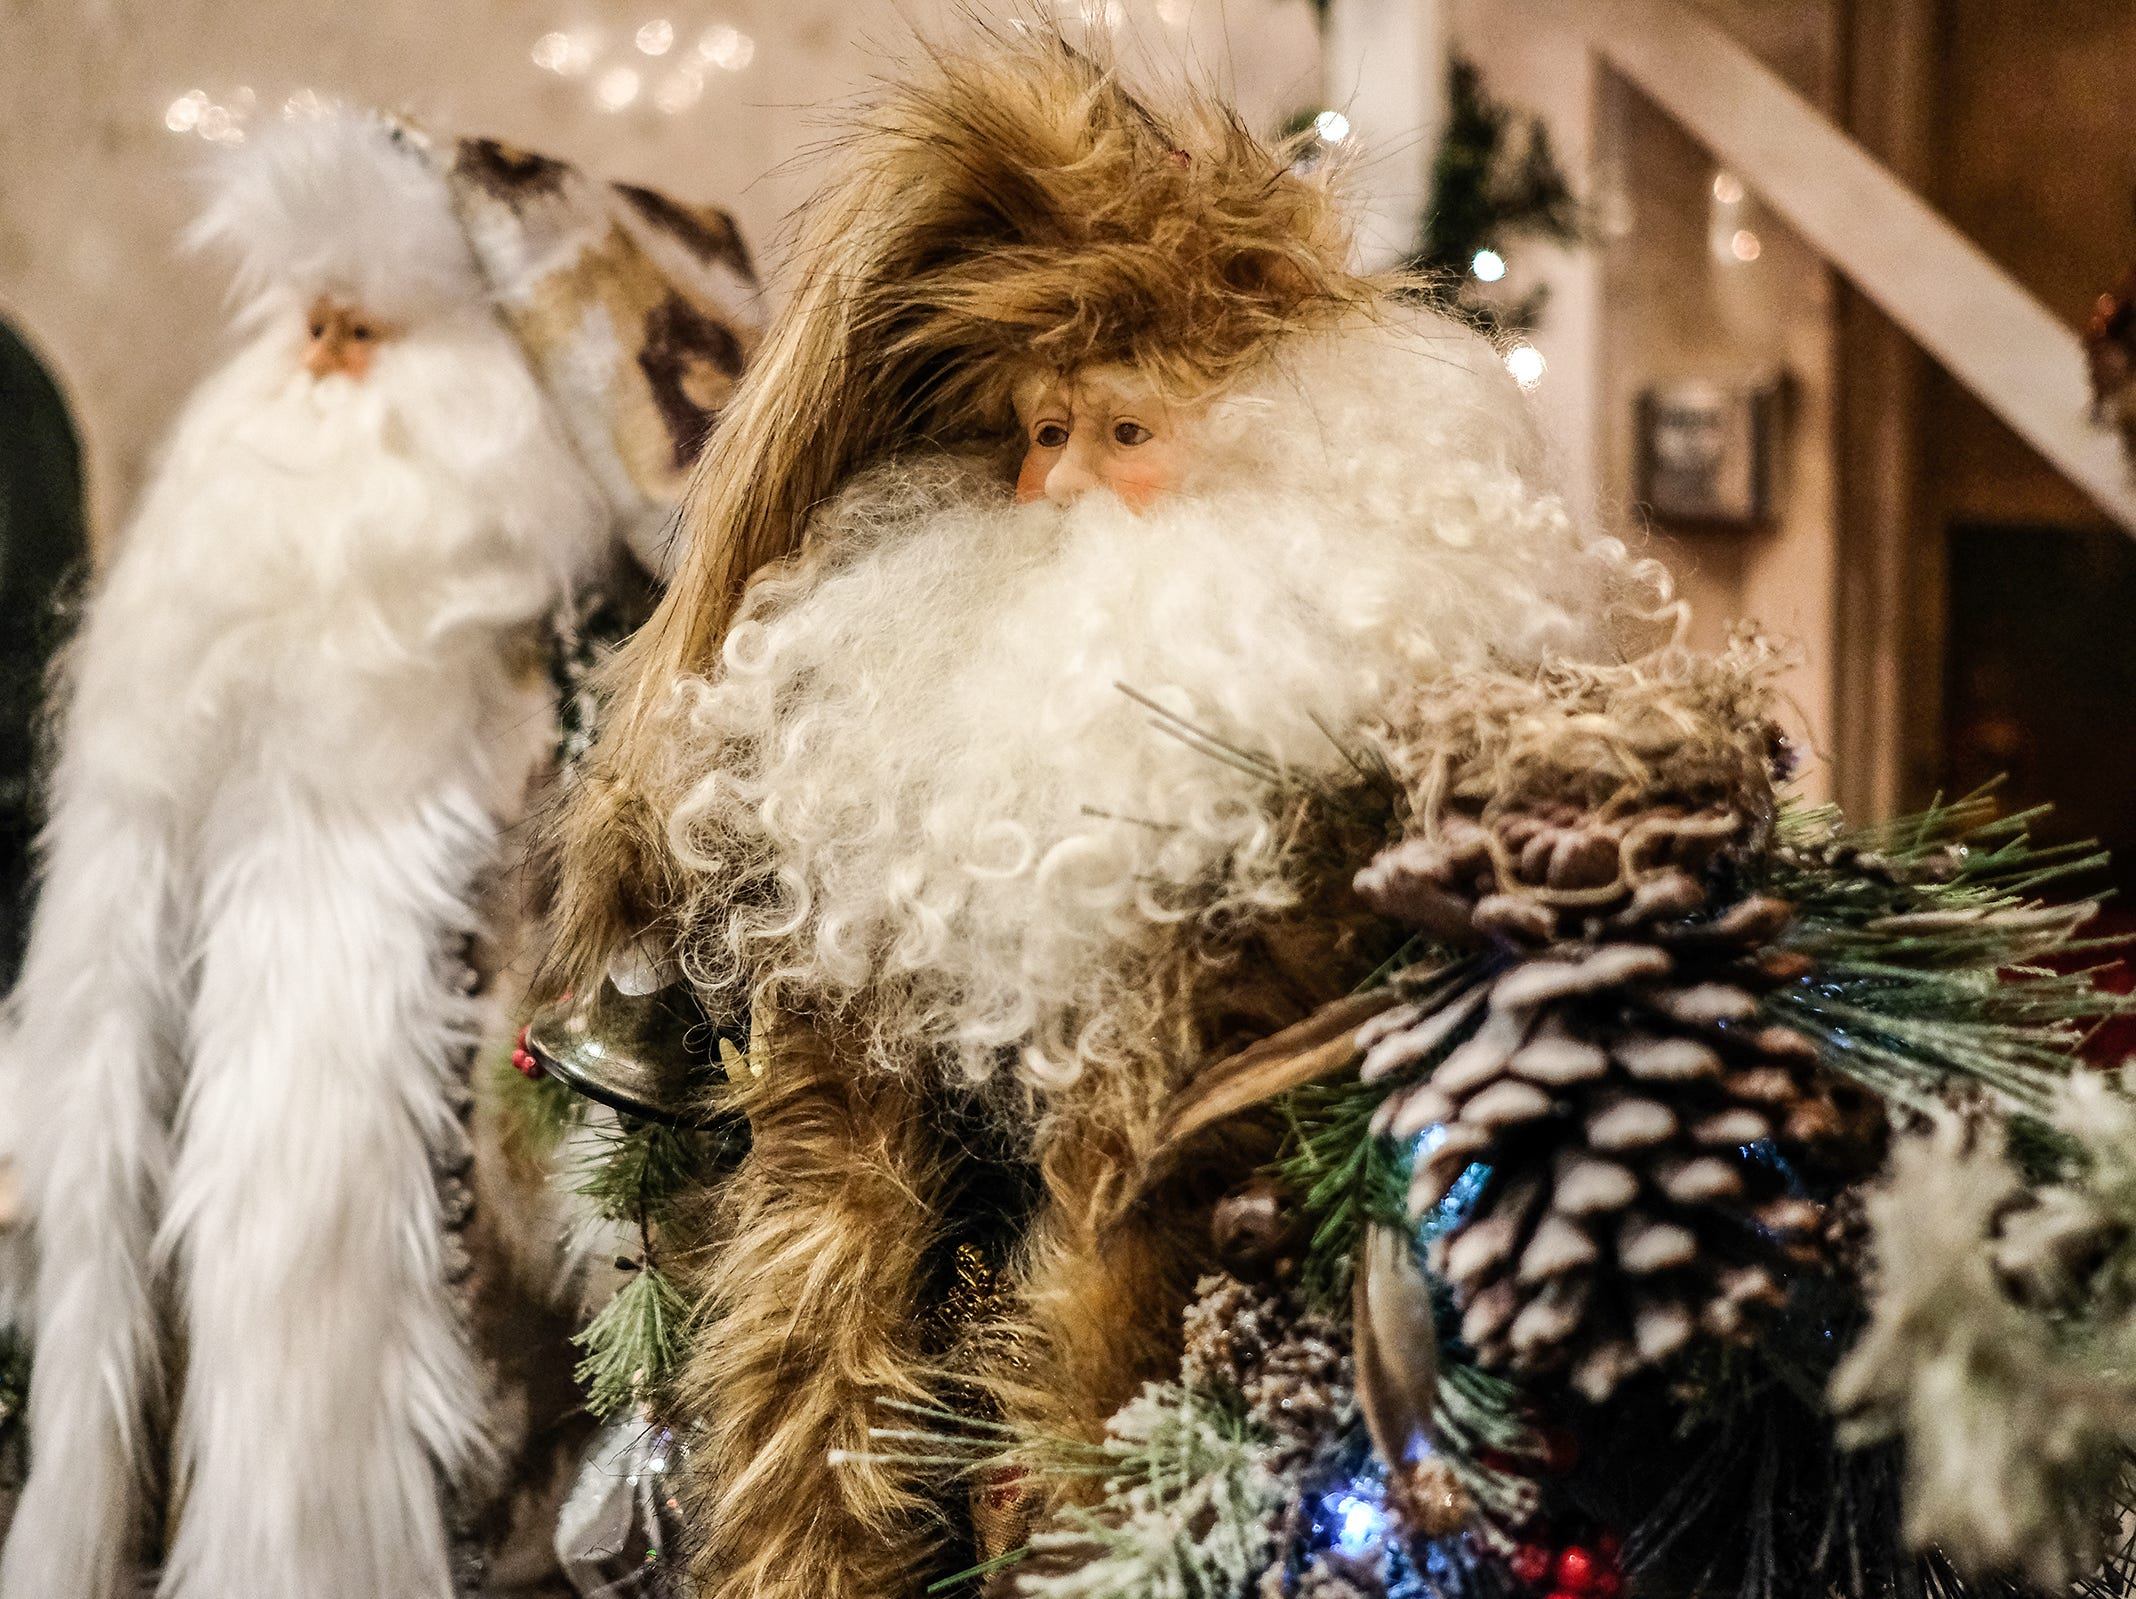 Handmade Old World and Victorian Santas by Esther Straus and Carla Schafer are on display at the MSU Winter Arts & Craft Show at the Union Building Sunday, Dec. 2, 2018.